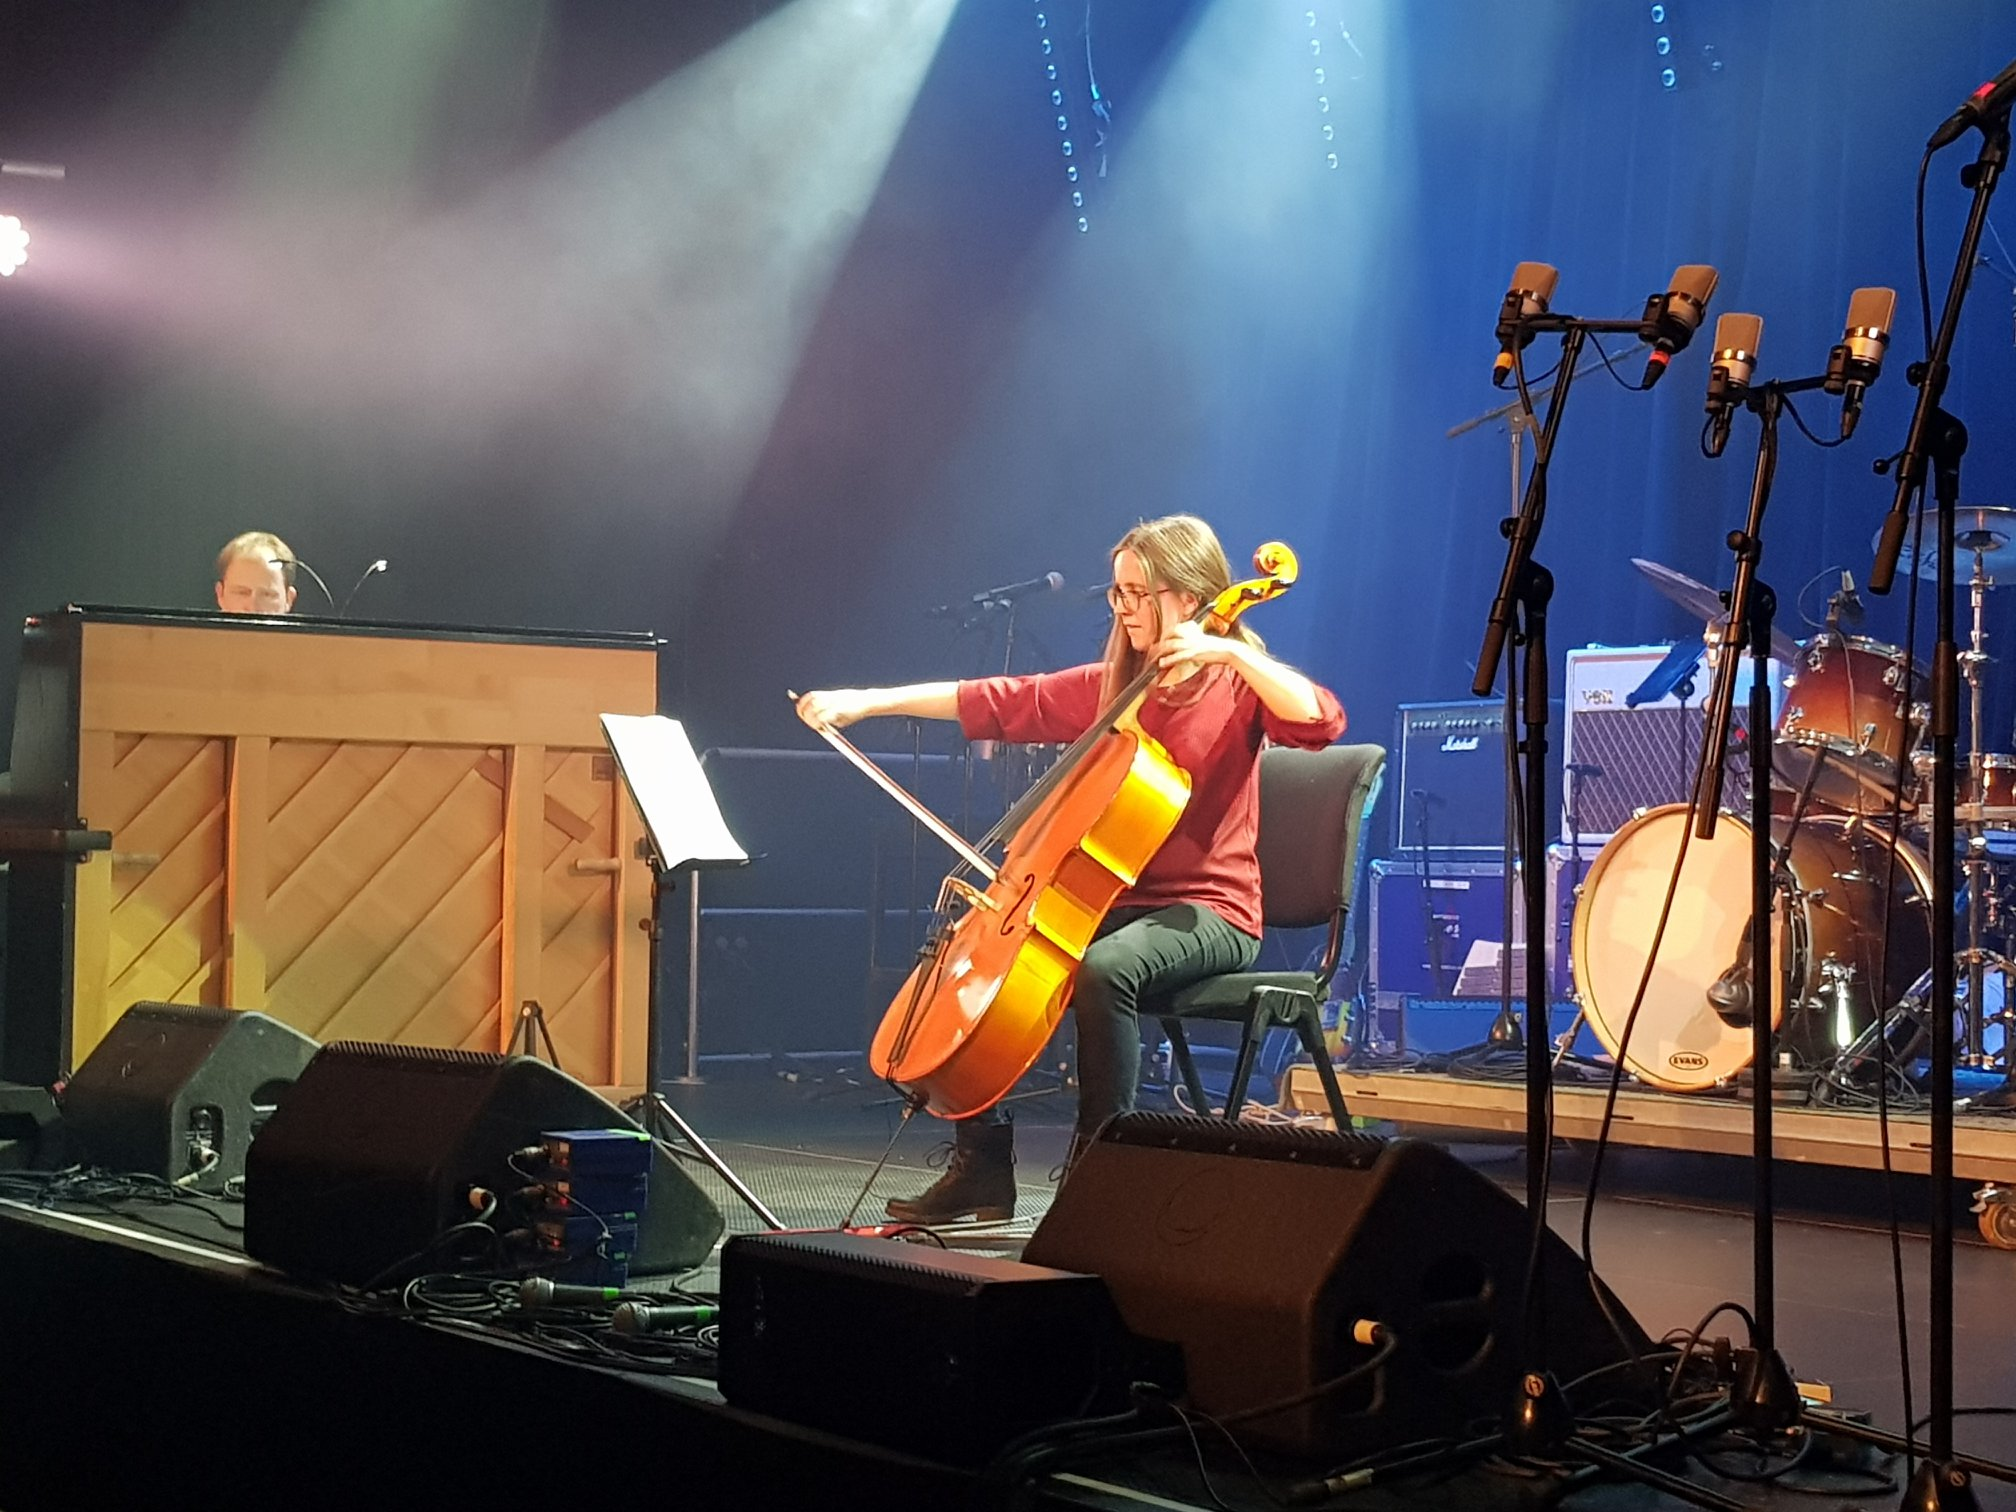 POLARJAZZ IN A PANDEMIC: Smaller lineup, bands and crowds – but it's Svalbard's first major music festival of the COVID-19 era thanks to a wonder of creative thinking and improvisation